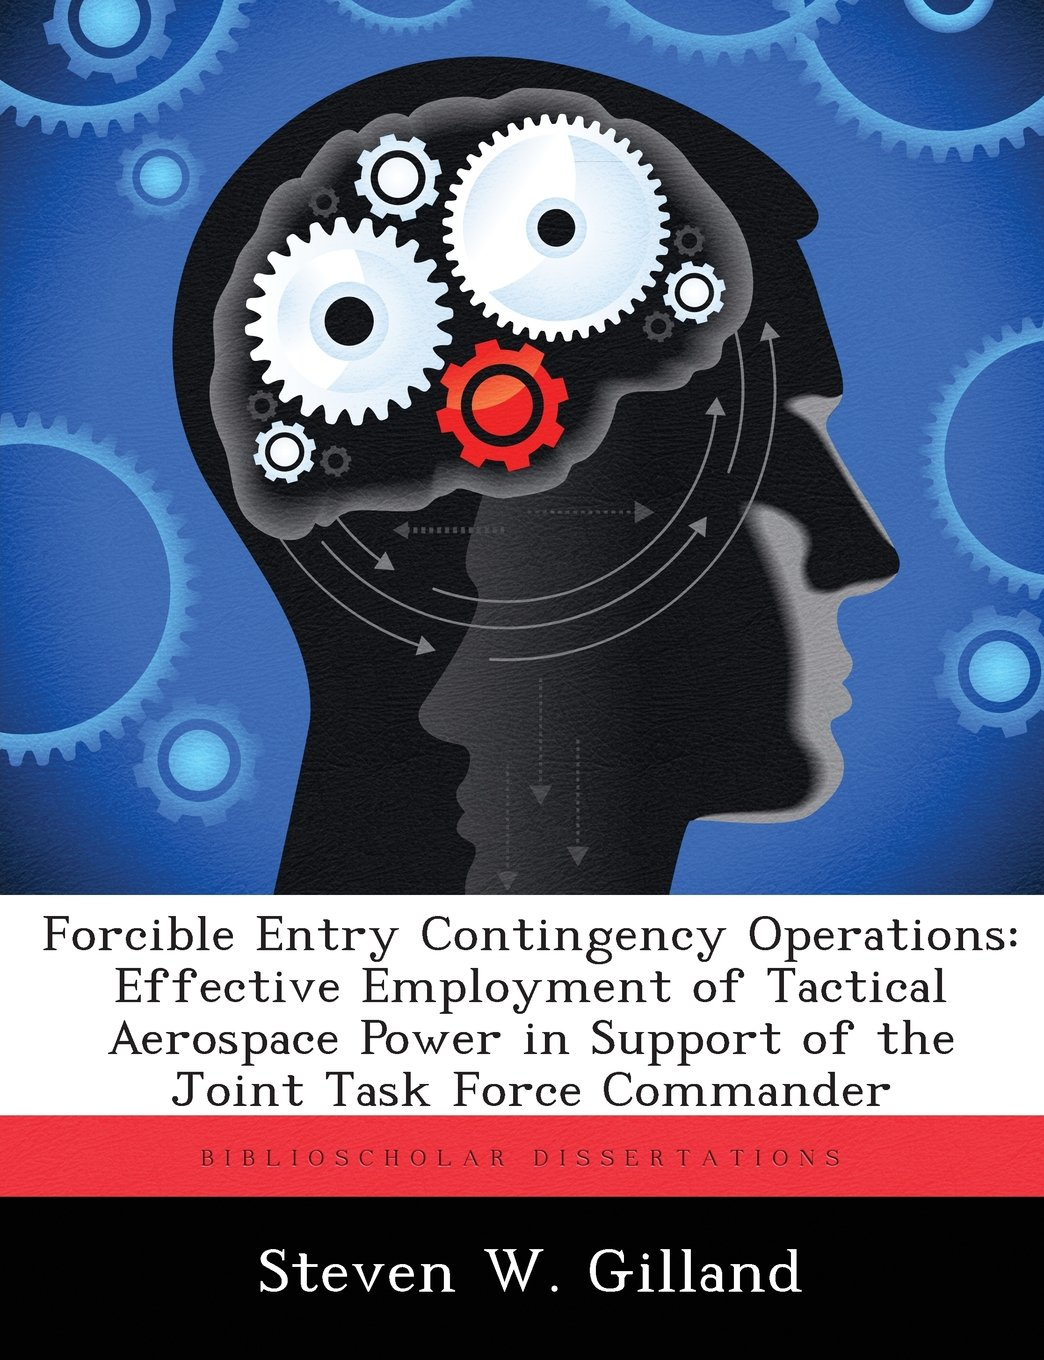 Forcible Entry Contingency Operations: Effective Employment of Tactical Aerospace Power in Support of the Joint Task Force Commander pdf